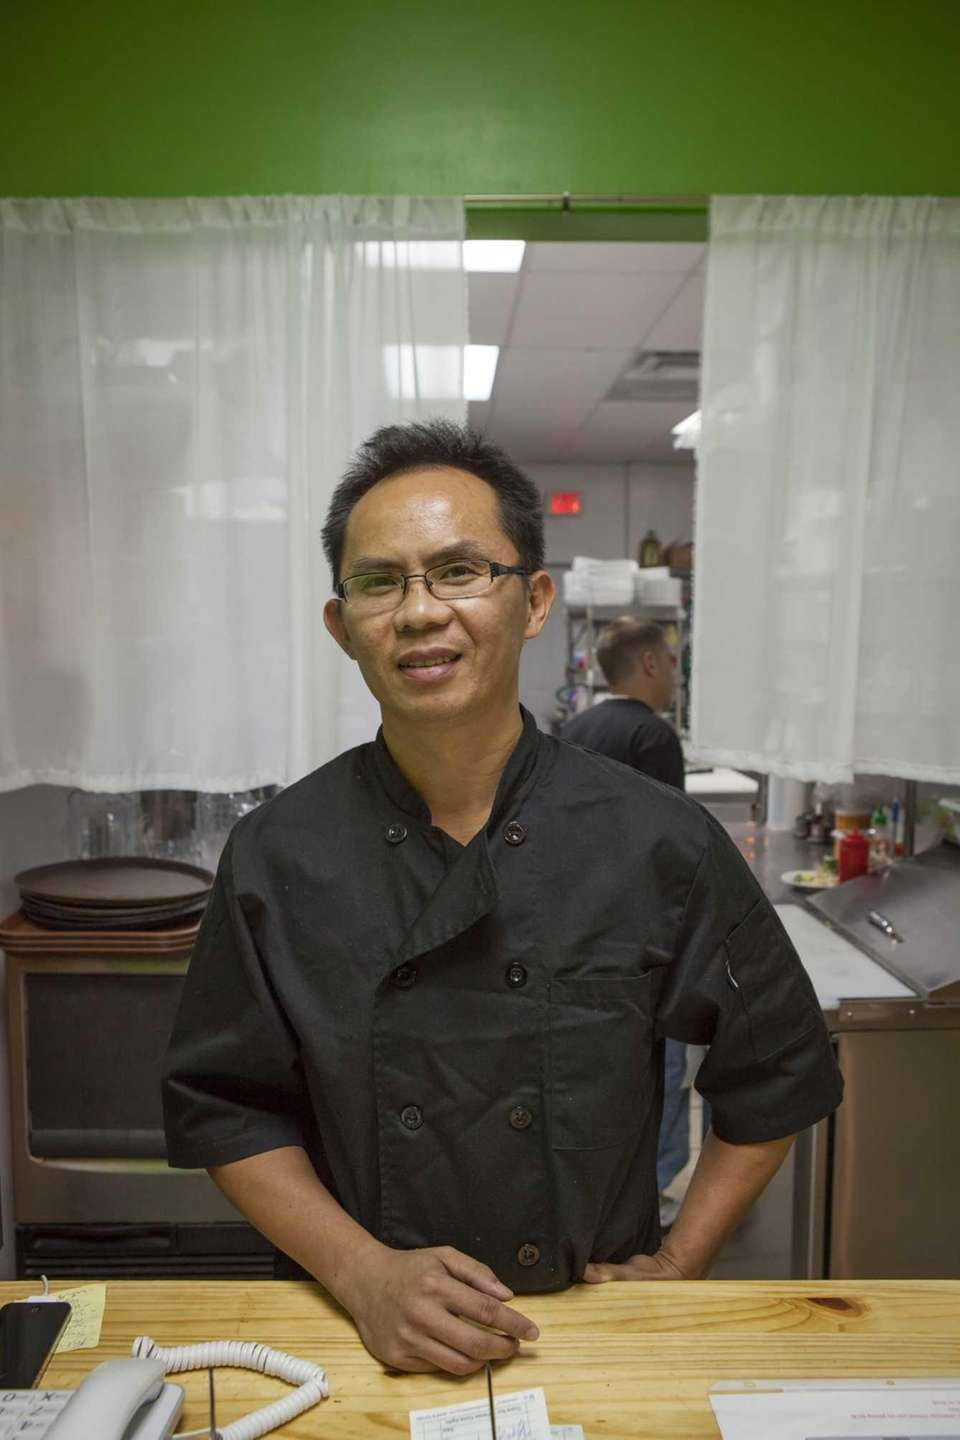 Owner and chef Joe Bui behind the counter